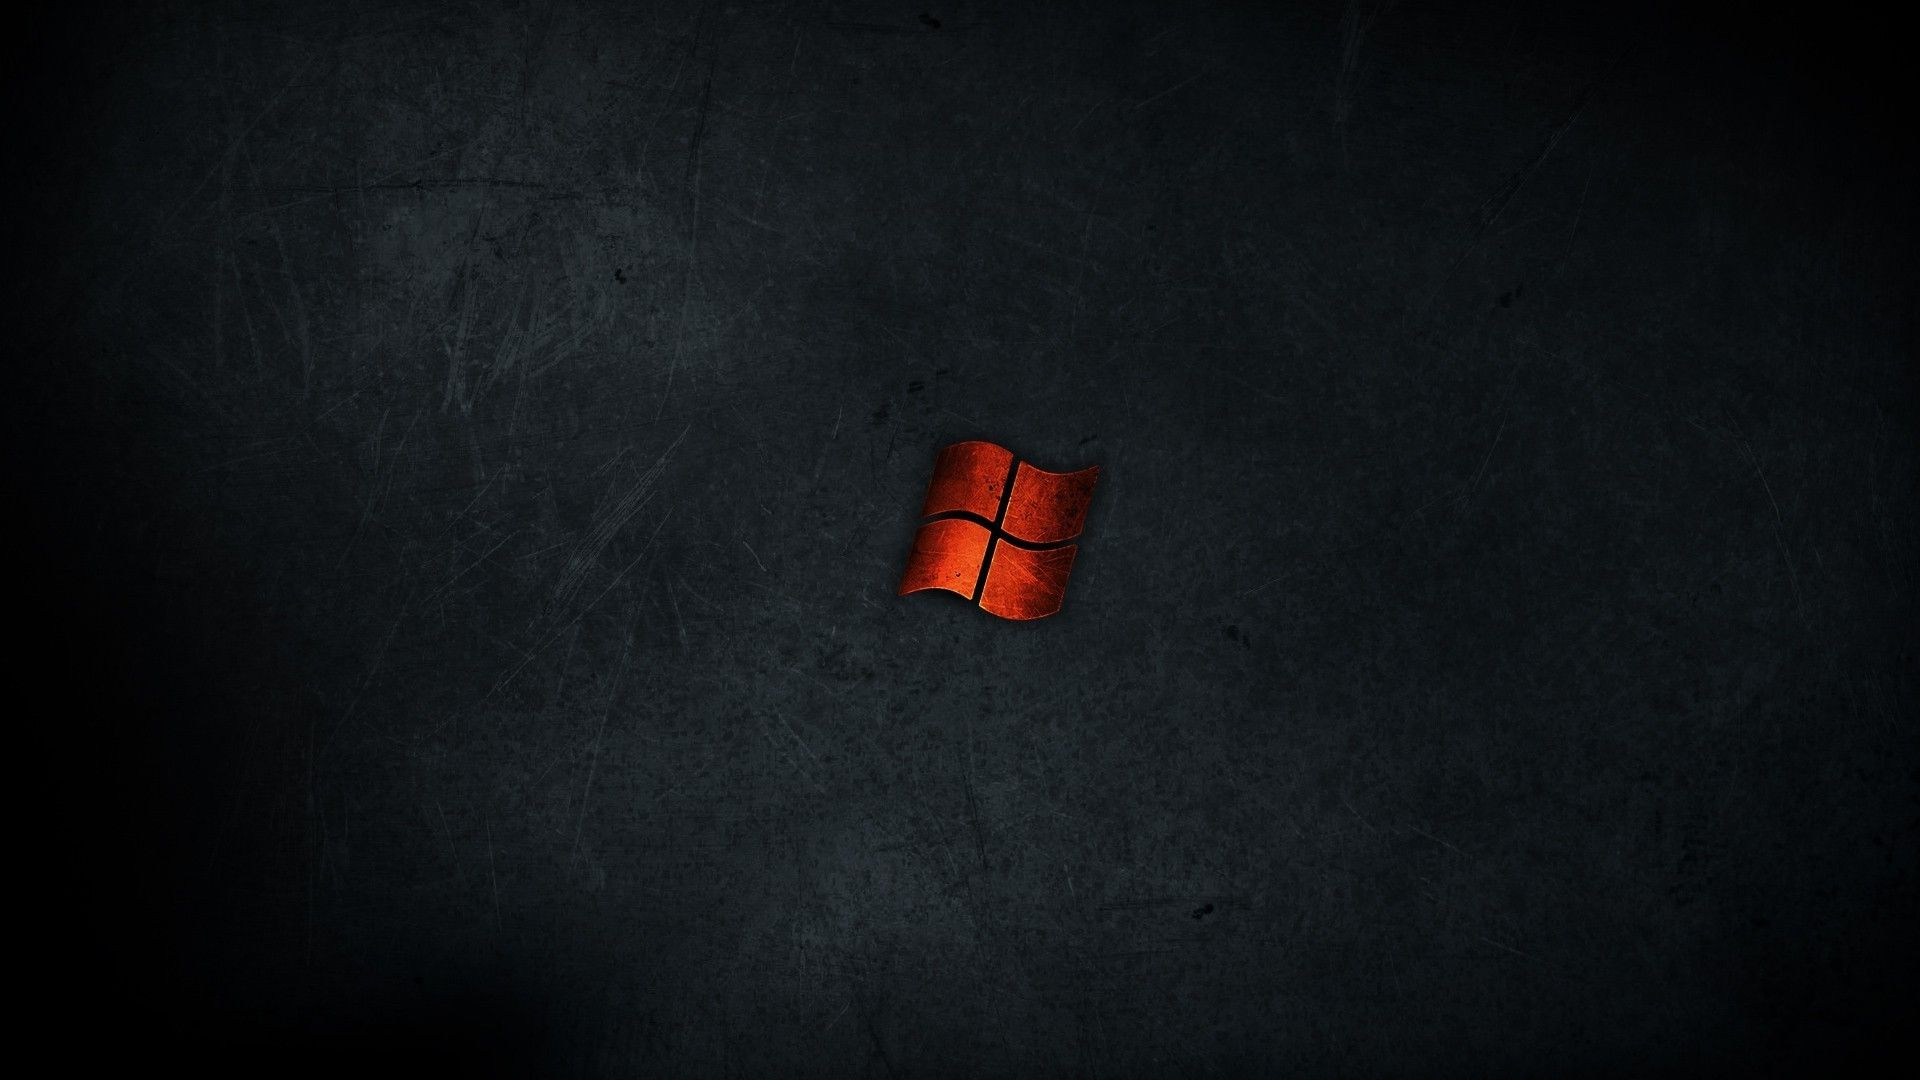 Windows 10 Logo Black Metallic 4k Hd Desktop Wallpaper For 4k Ultra Hd Tv By Windows 10 Black Wallpaper 67 Windows Wallpaper Wallpaper Windows 10 Wallpaper Pc